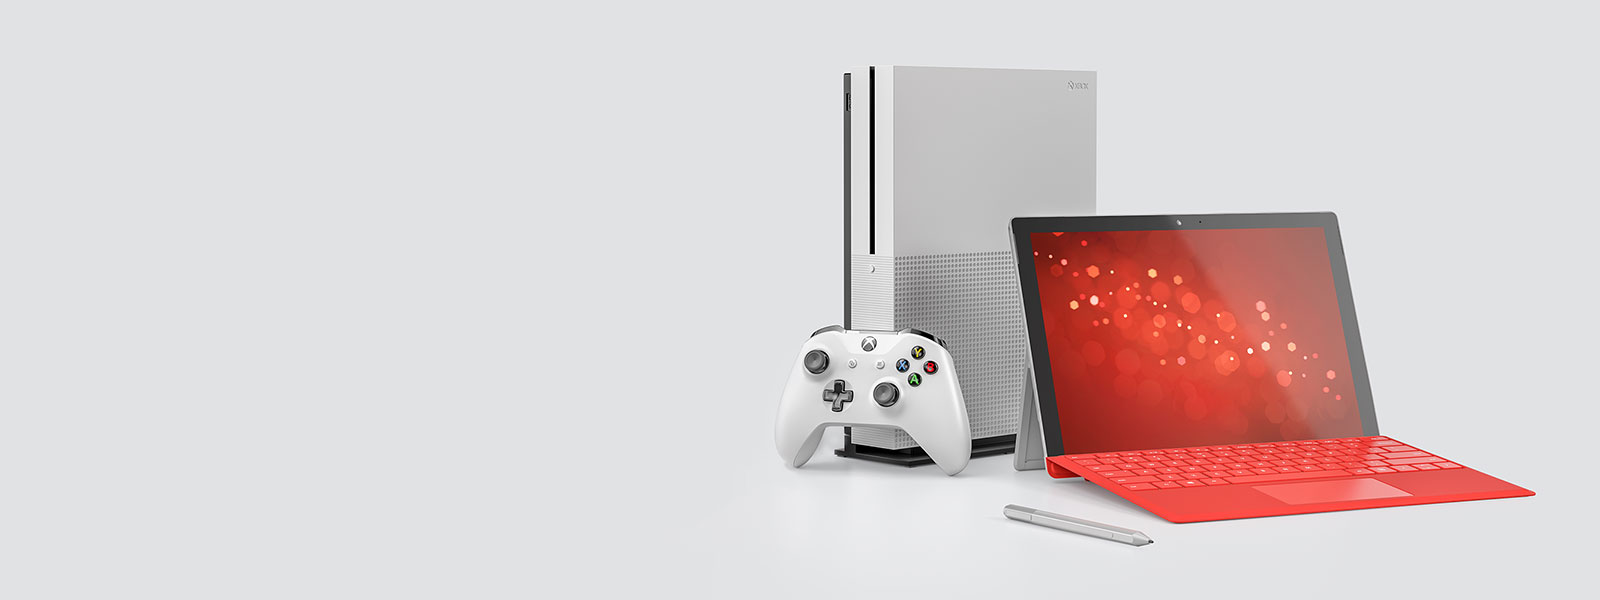 A Surface device, a Surface Pen, and an Xbox One S